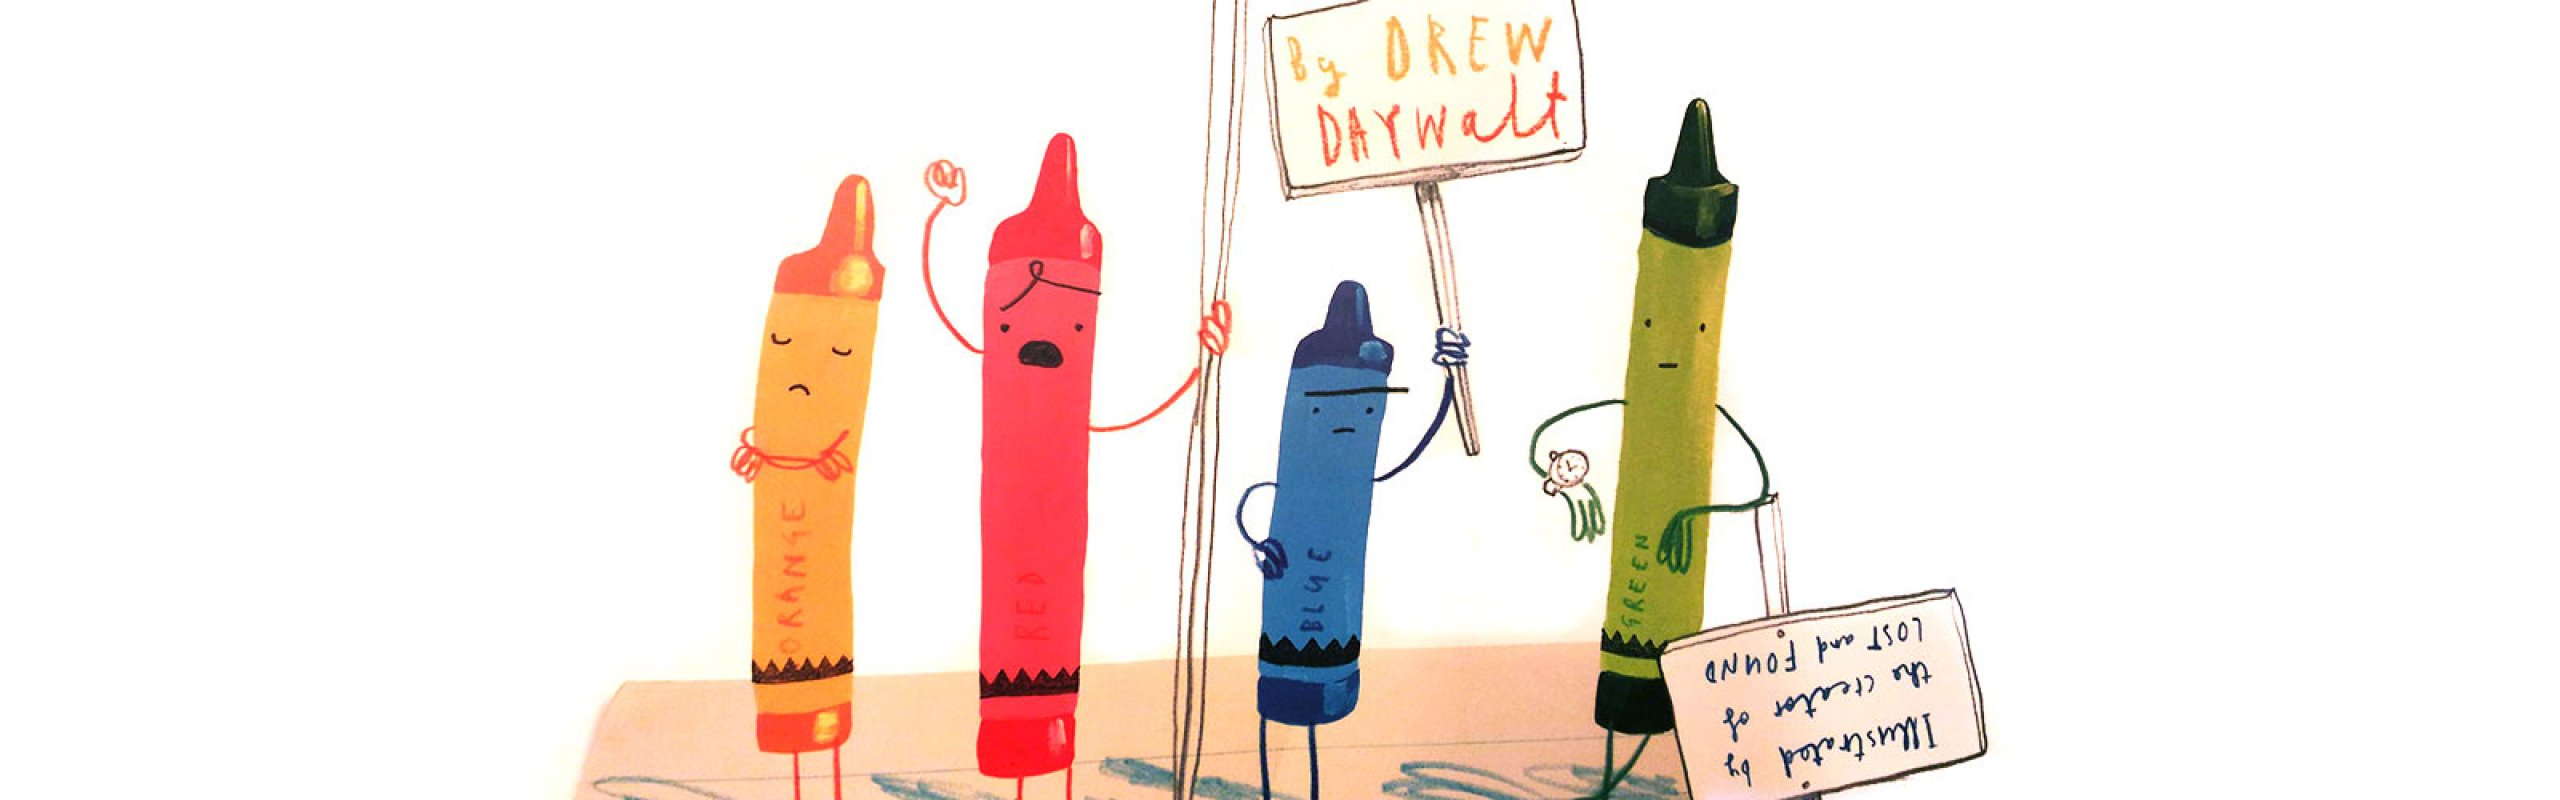 It's Storytime! THE DAY THE CRAYONS QUIT di Drew Daywalt